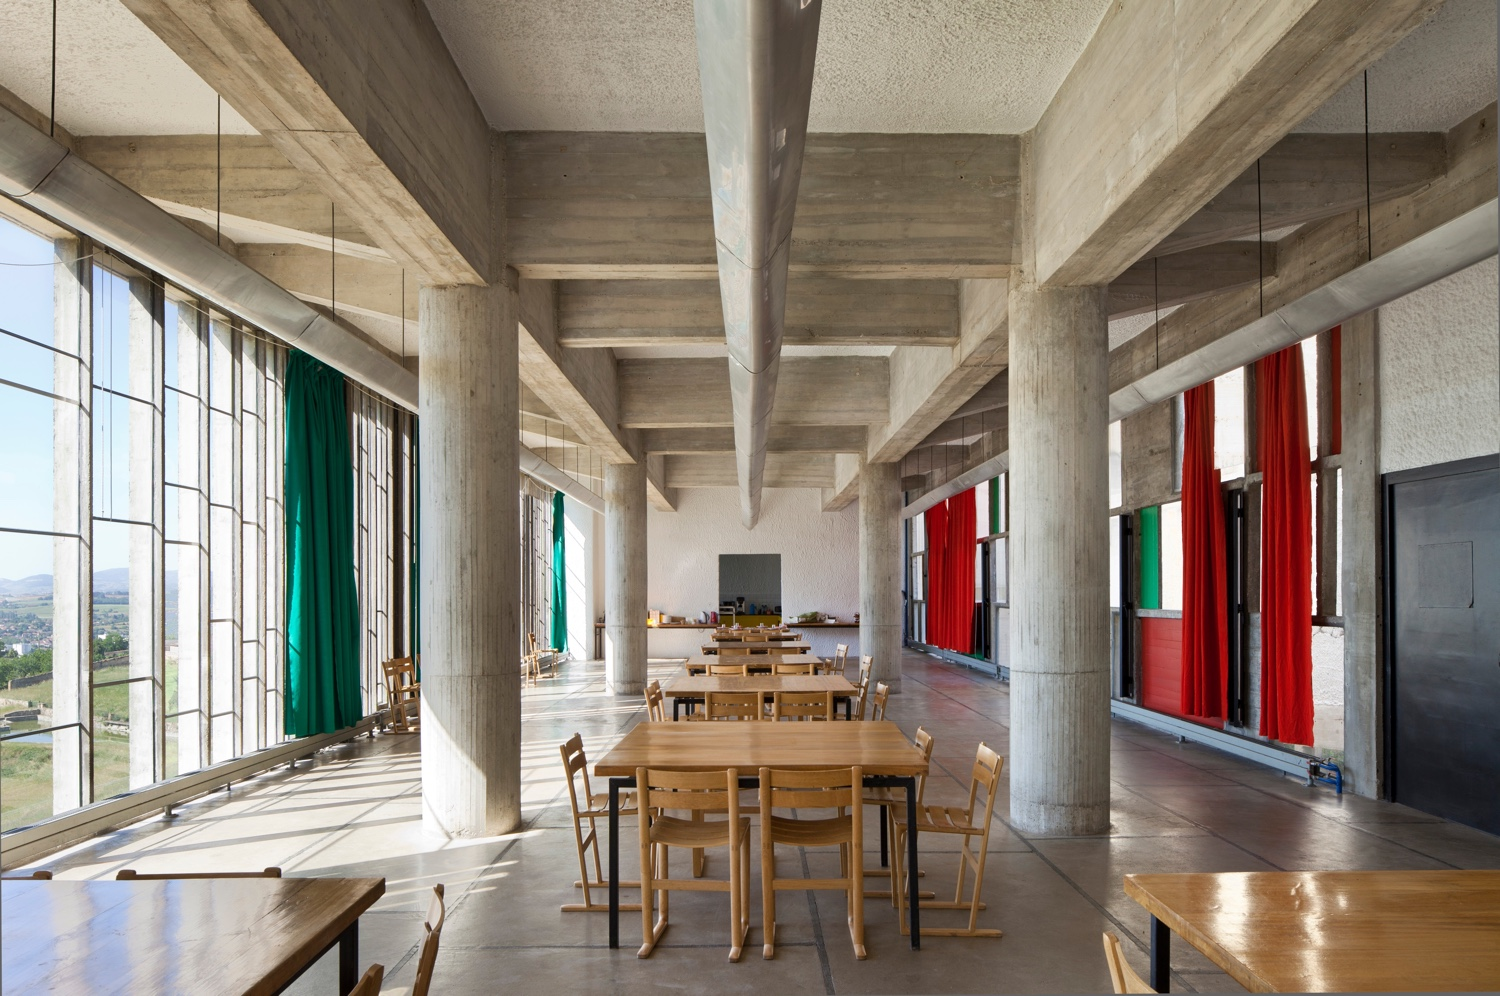 Refectory at Couvent Sainte-Marie de la Tourette. Photo by Oliver Martin-Gambier © FLC/ADAGP.